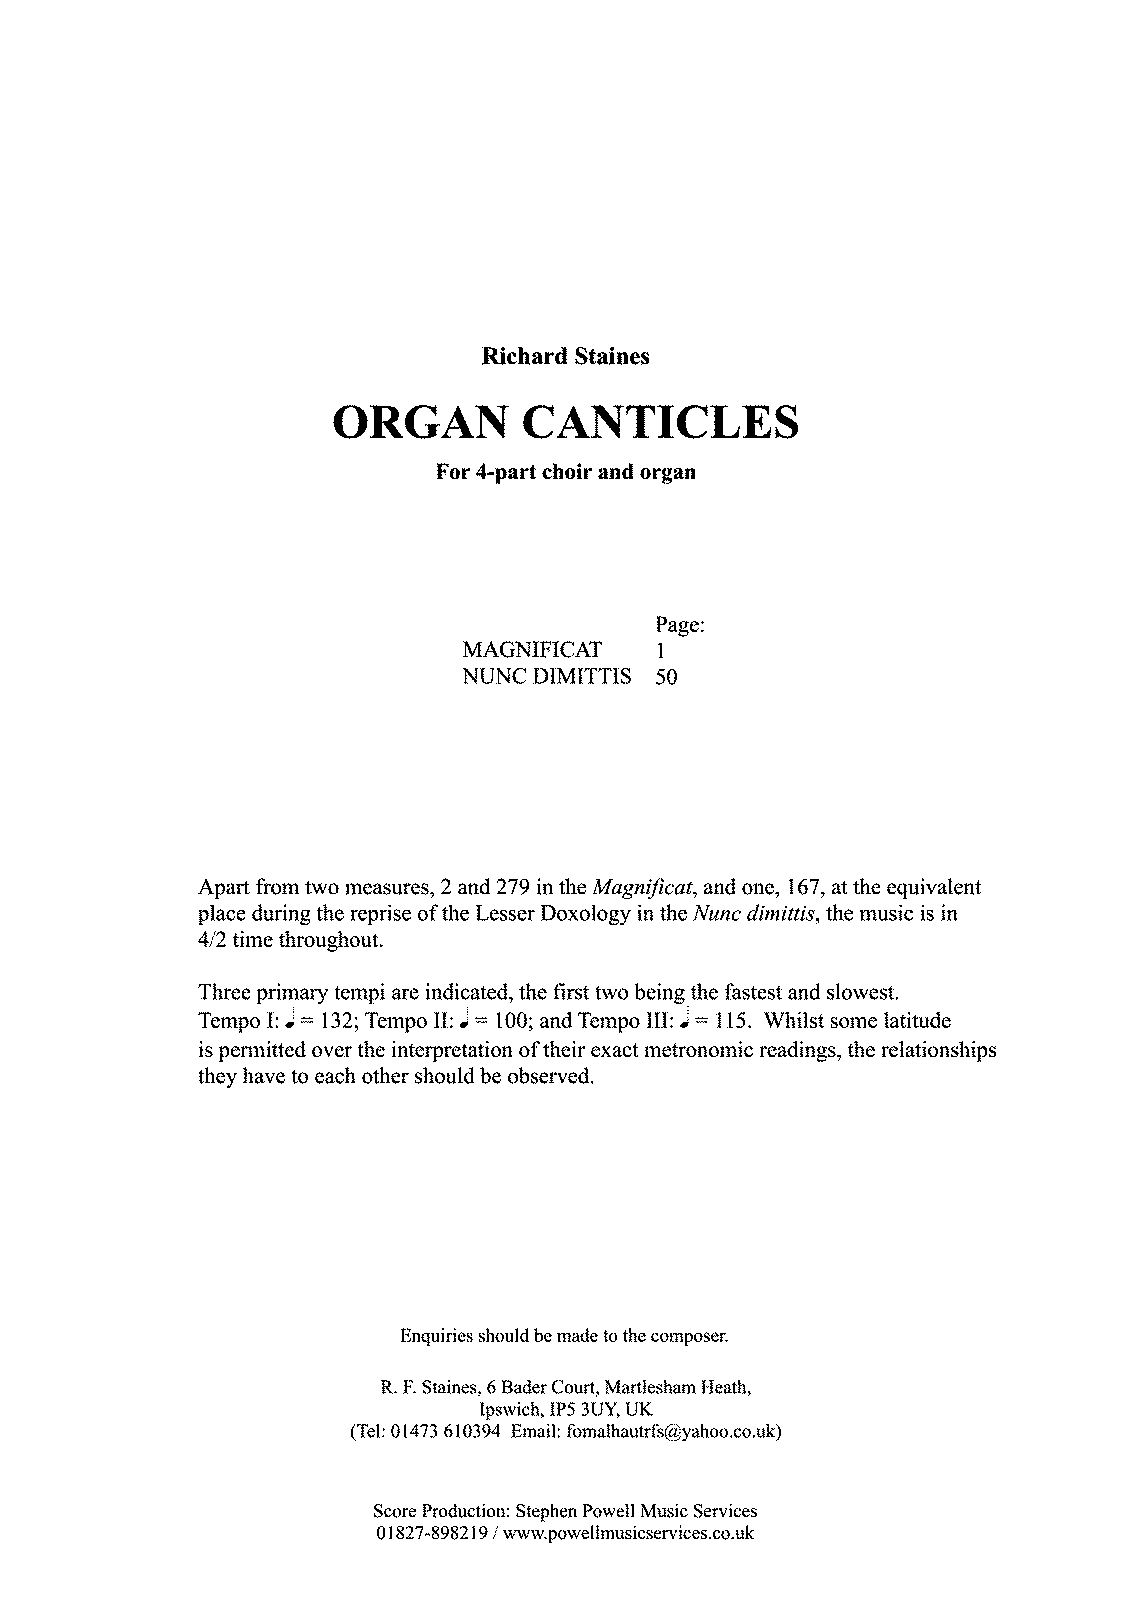 PMLP679181-Richard Staines - Organ Canticles For 4-part Choir and Organ.pdf